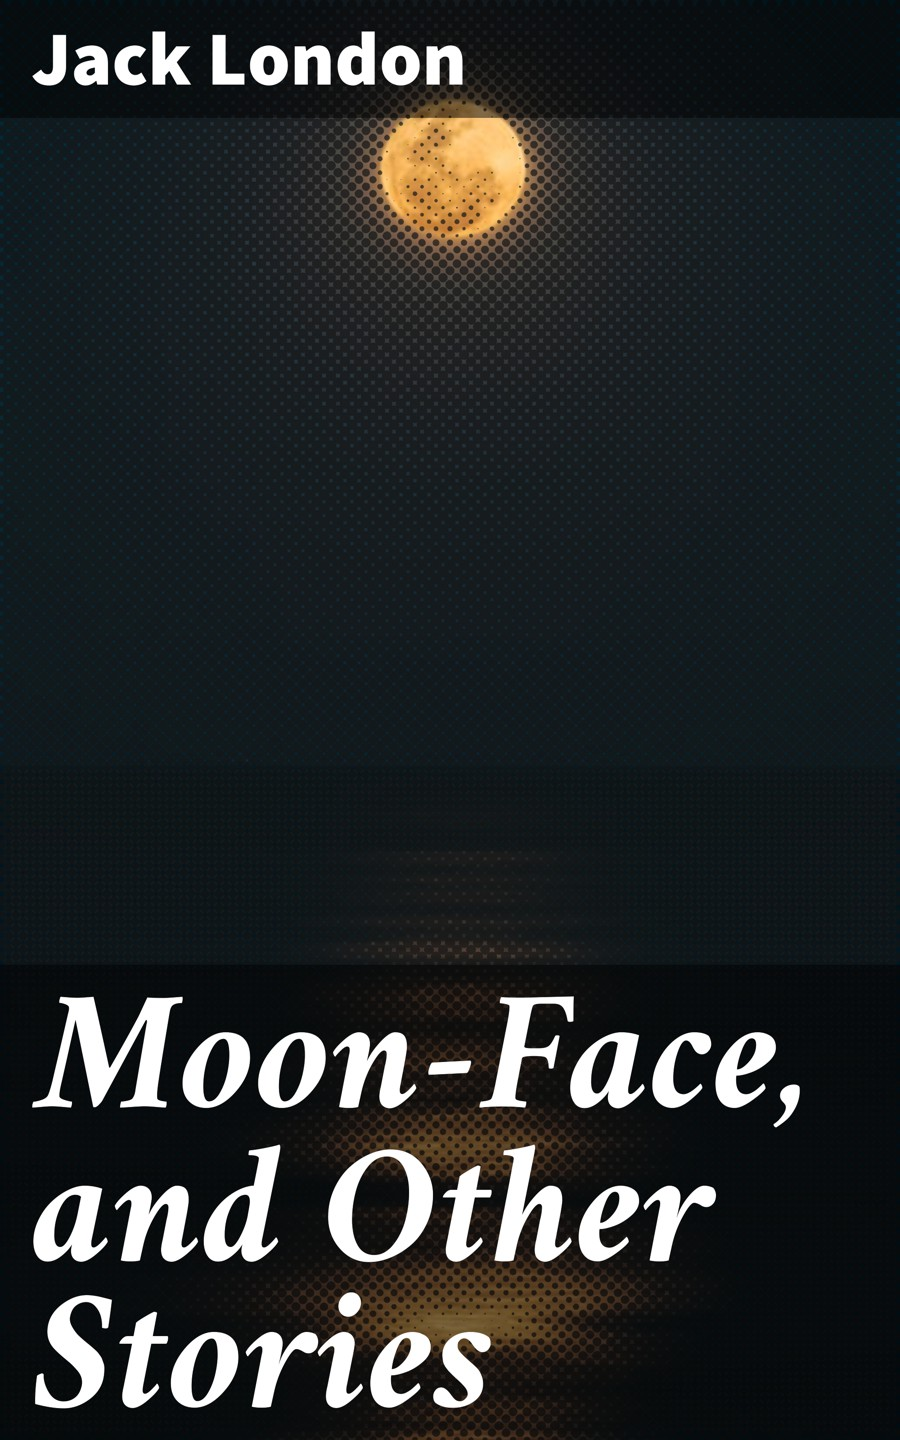 Jack London Moon-Face, and Other Stories mackenzie moulton london police divers stories 1983 to 1996